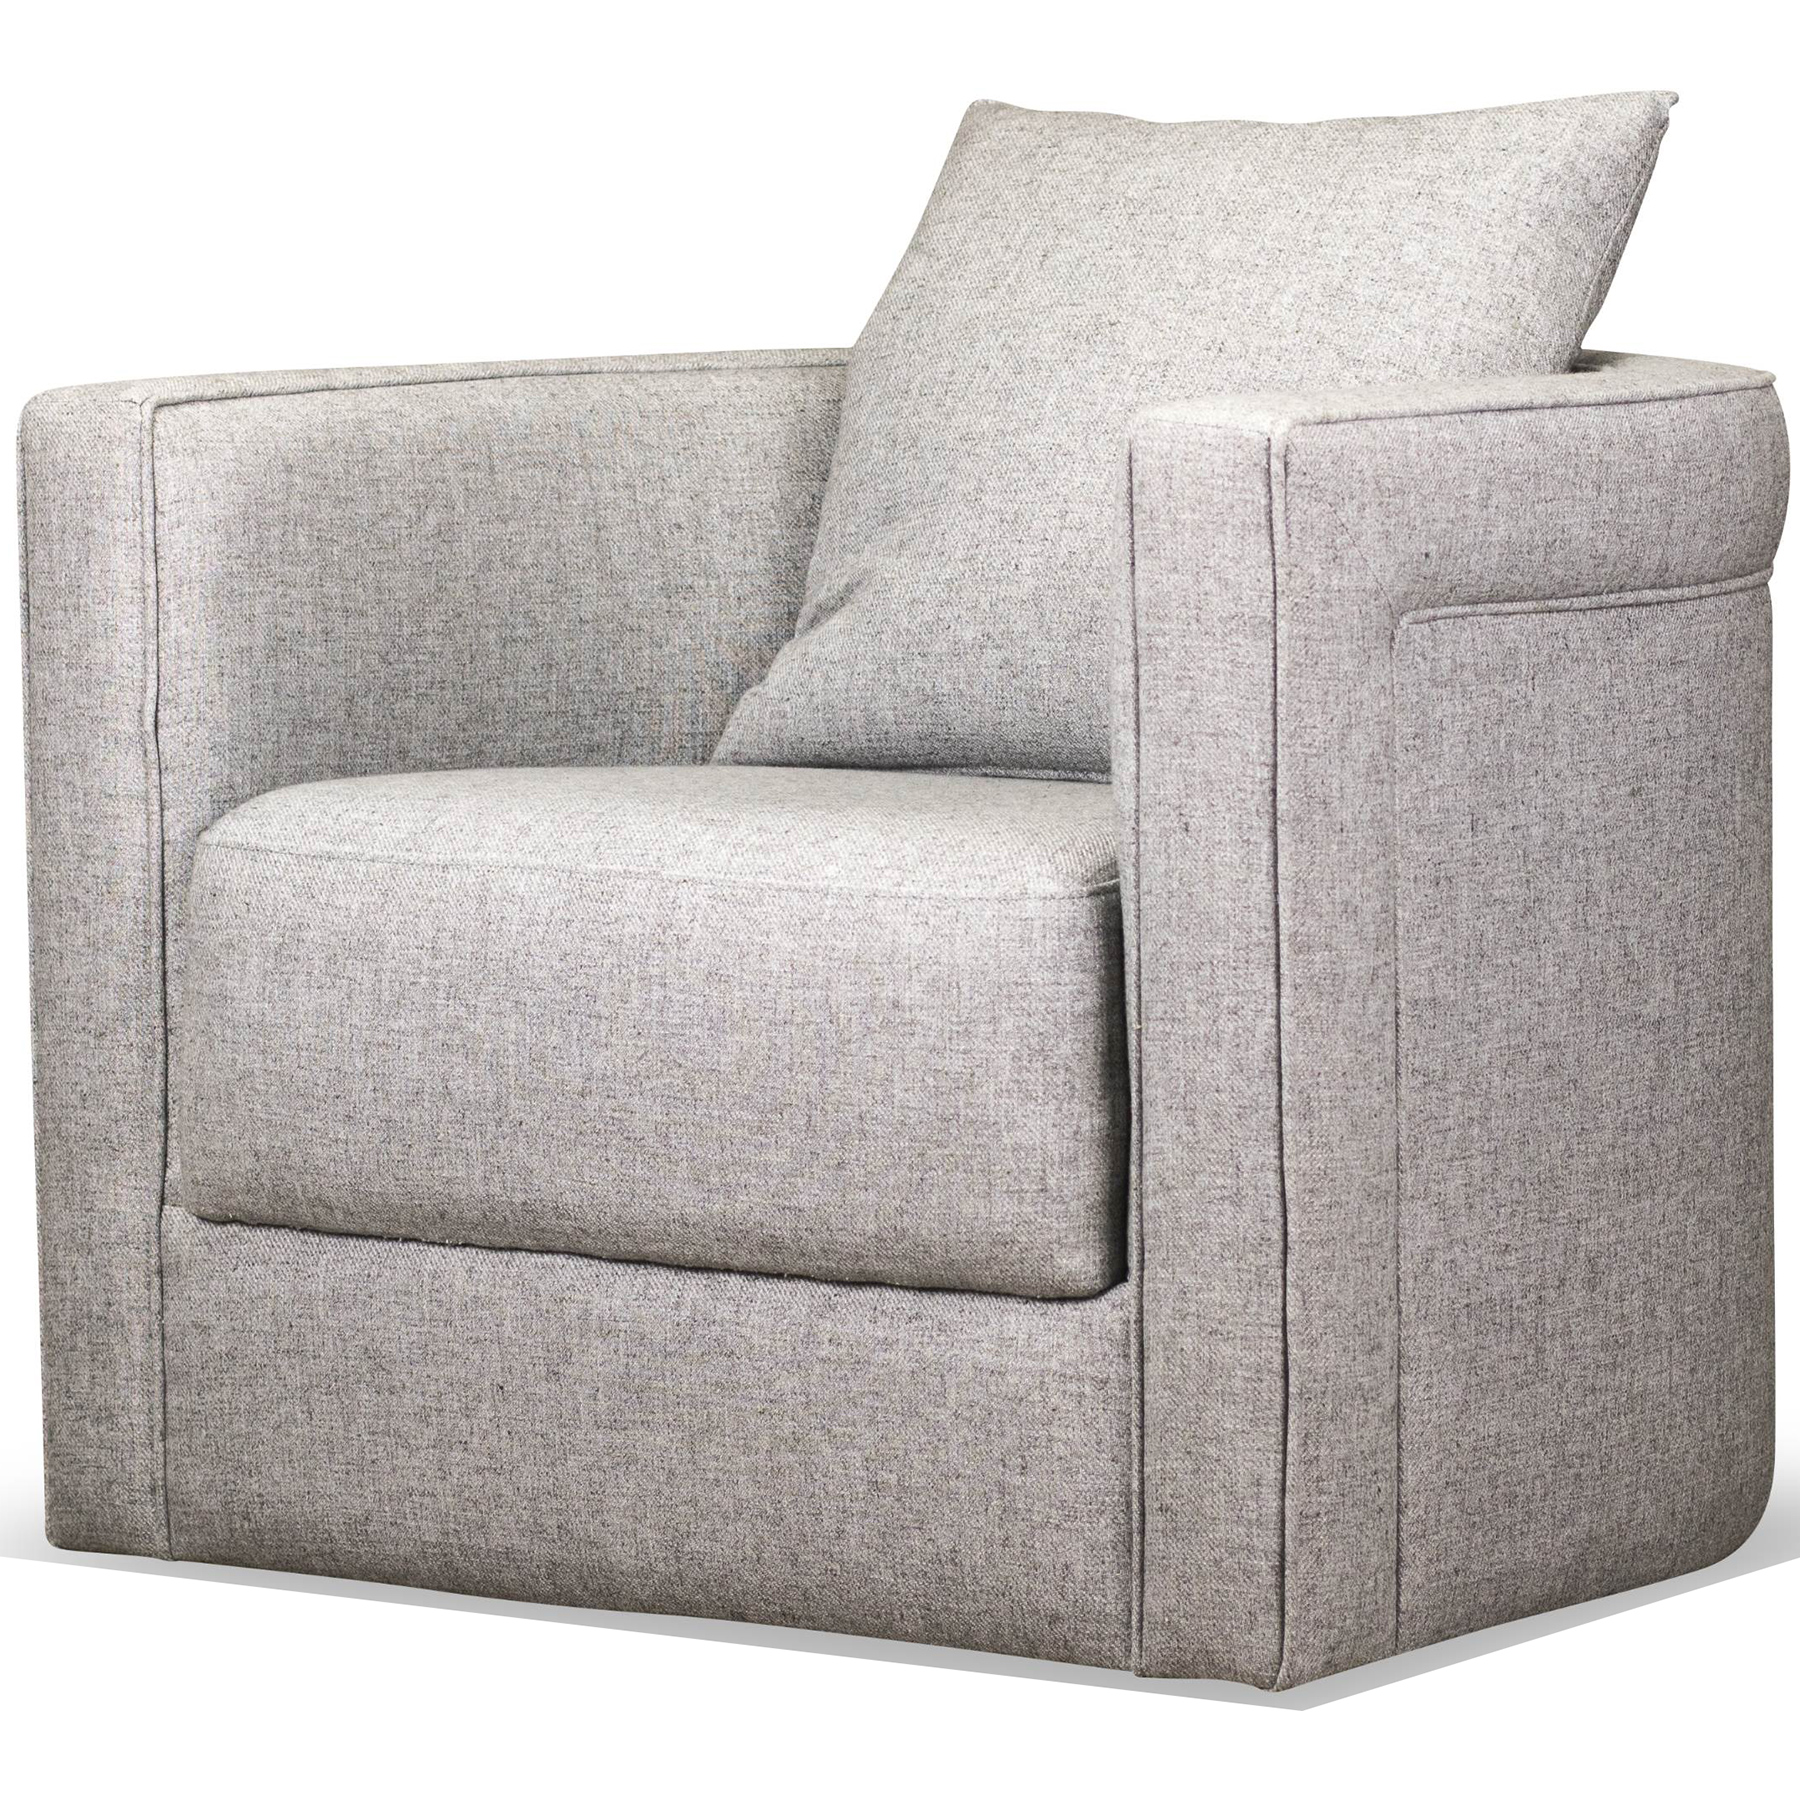 Awe Inspiring Adrian Swivel Accent Chair In Durbin Light Grey Fabric By Spectra Home Furnishings Machost Co Dining Chair Design Ideas Machostcouk